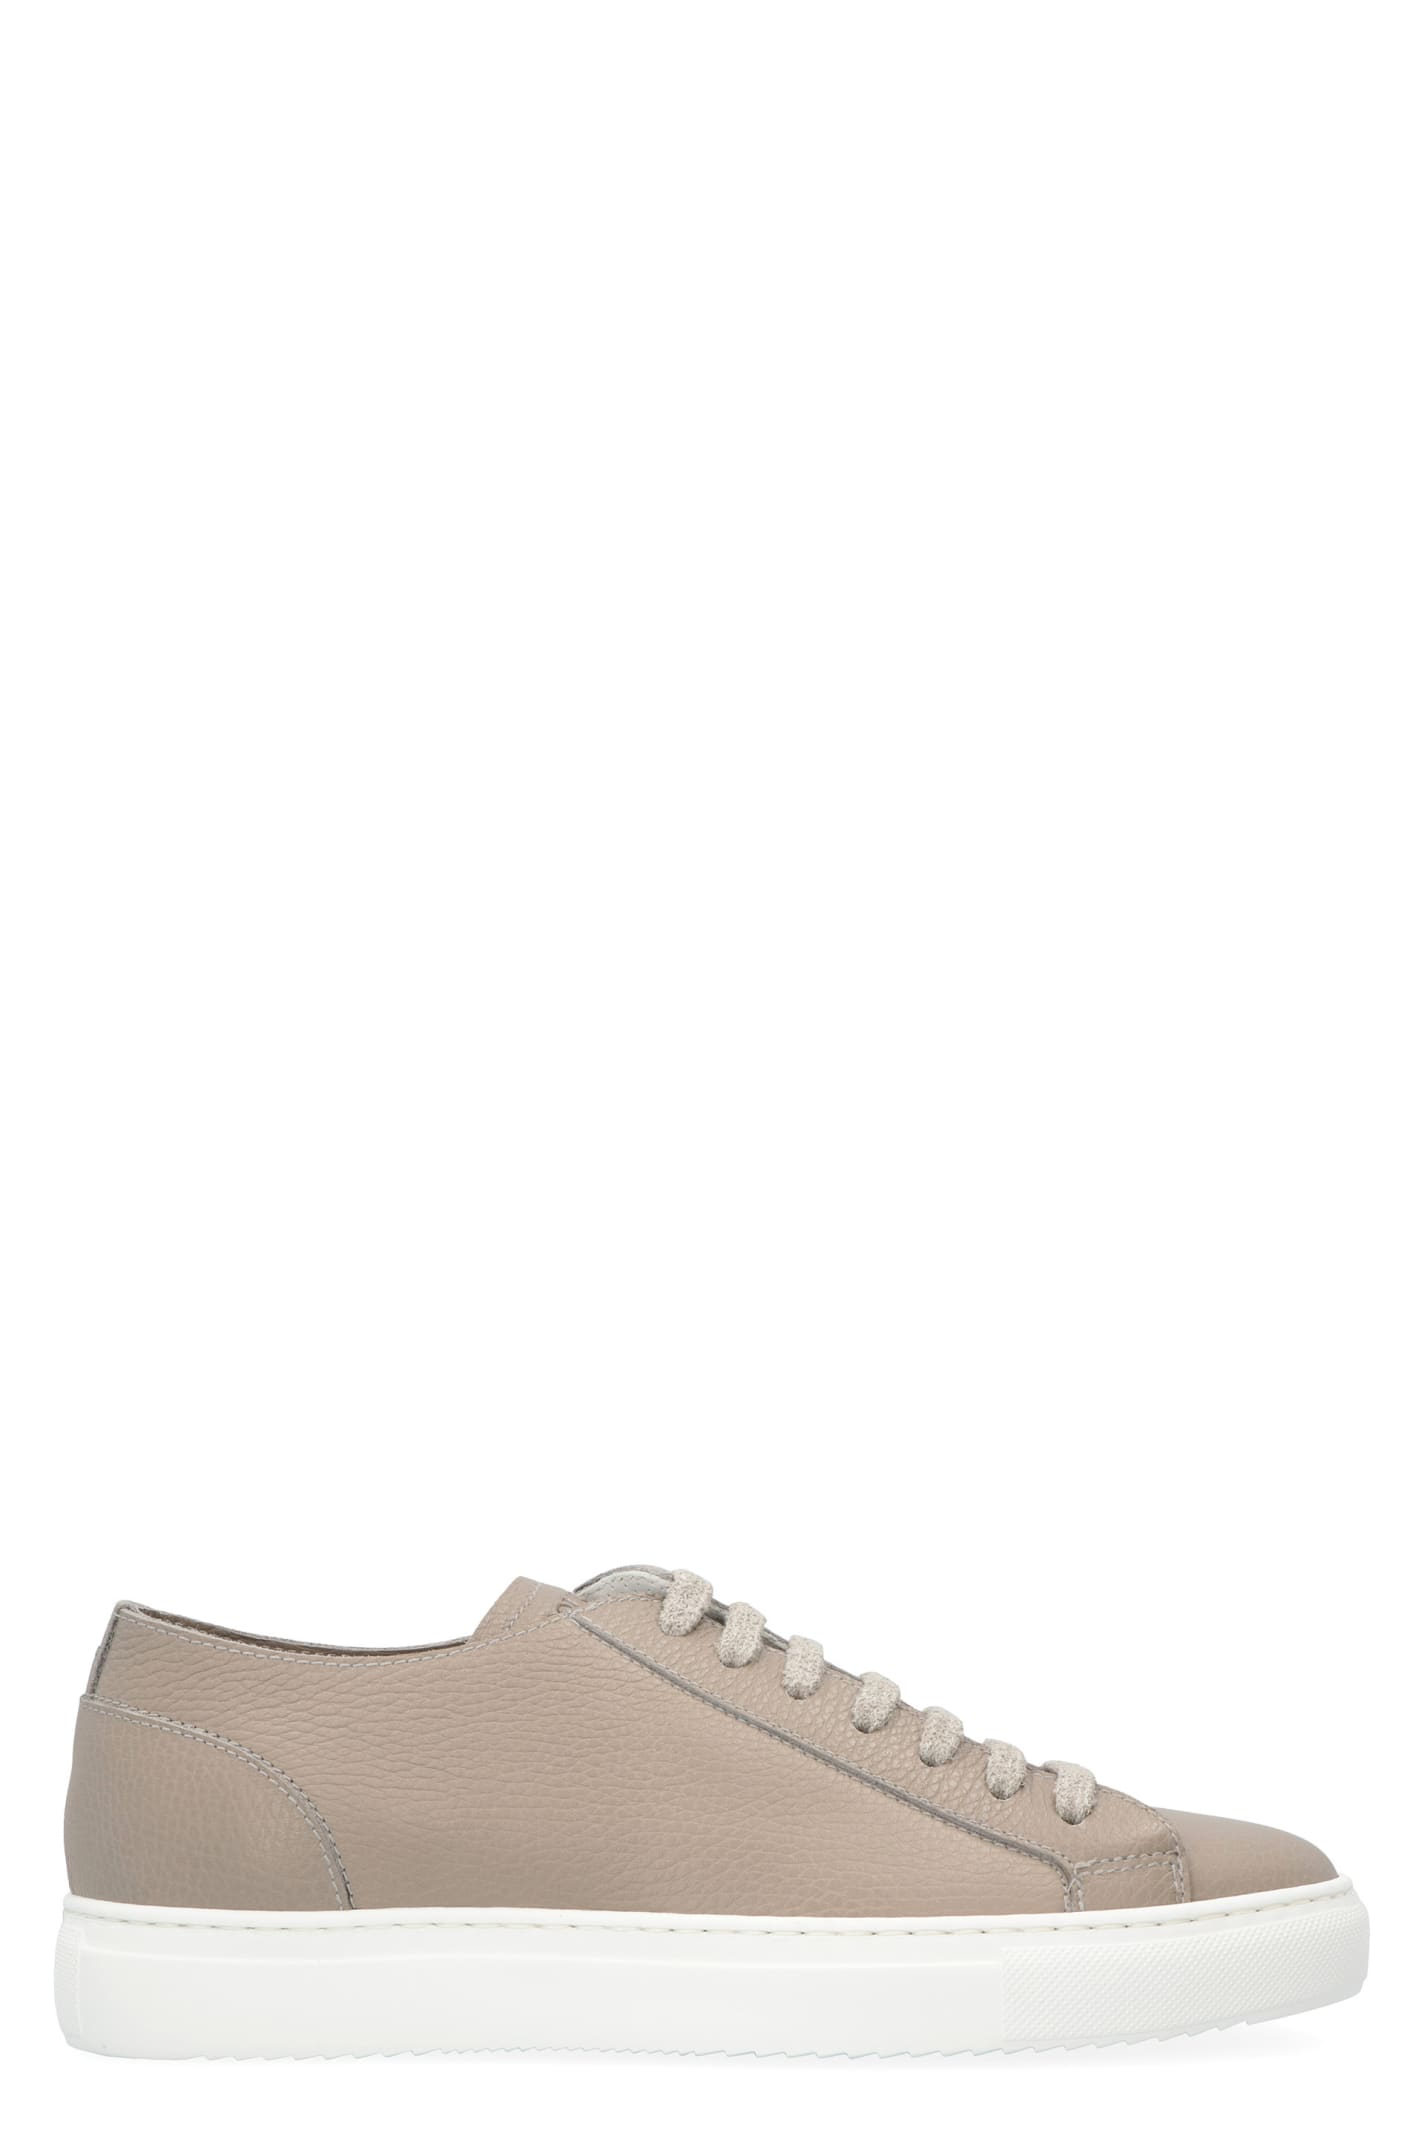 Doucal's LEATHER LOW-TOP SNEAKERS